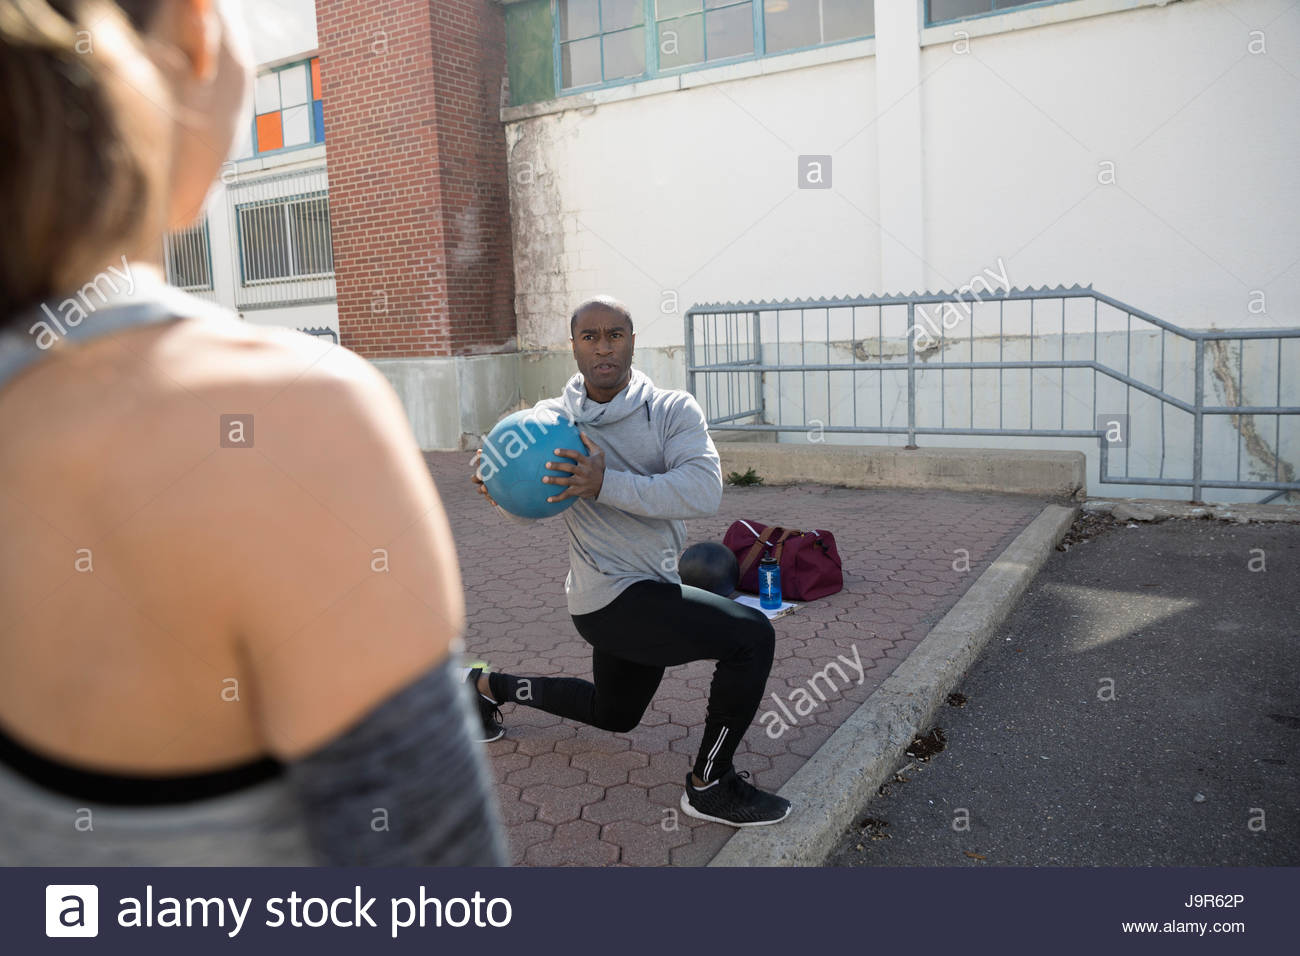 Personal Trainer African American Stock Photos  Personal -8309